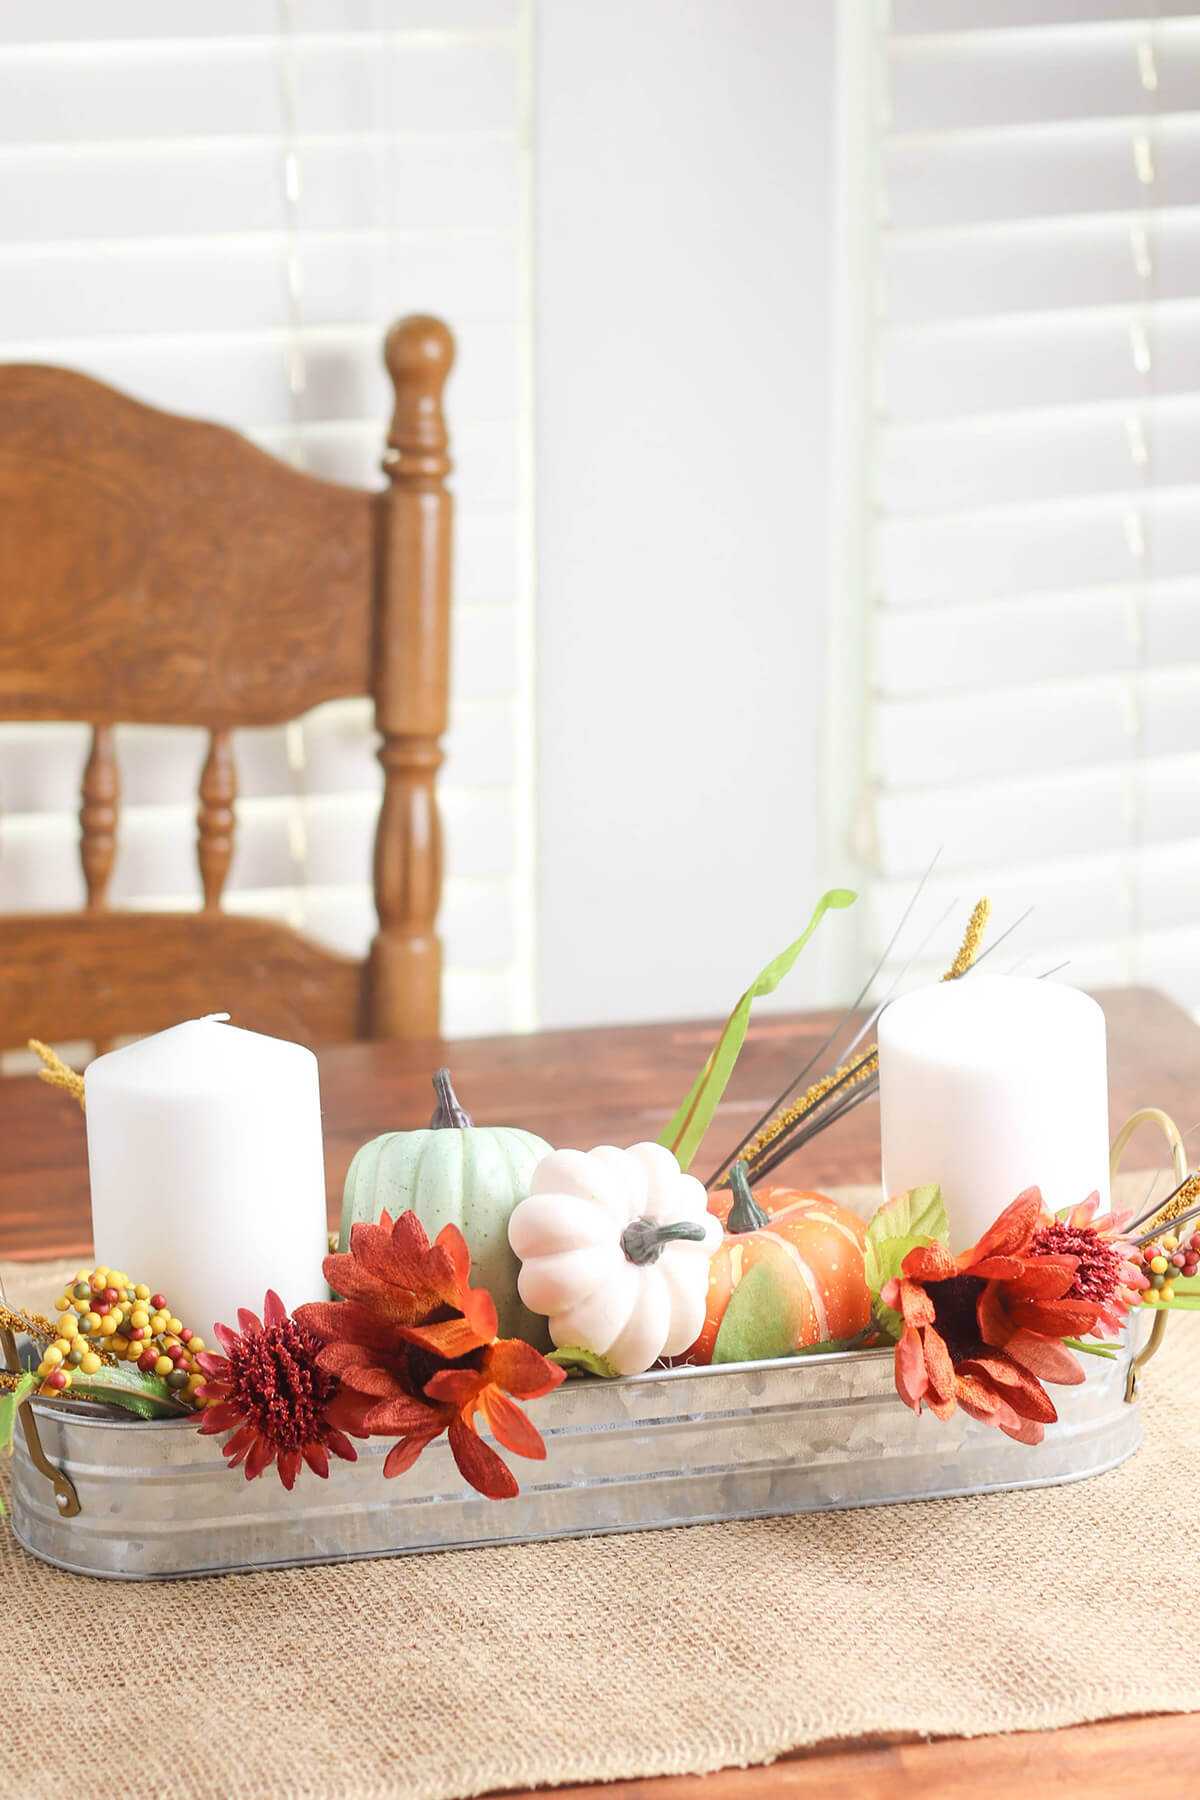 Rustic Decorative Pumpkin Tablescape Display